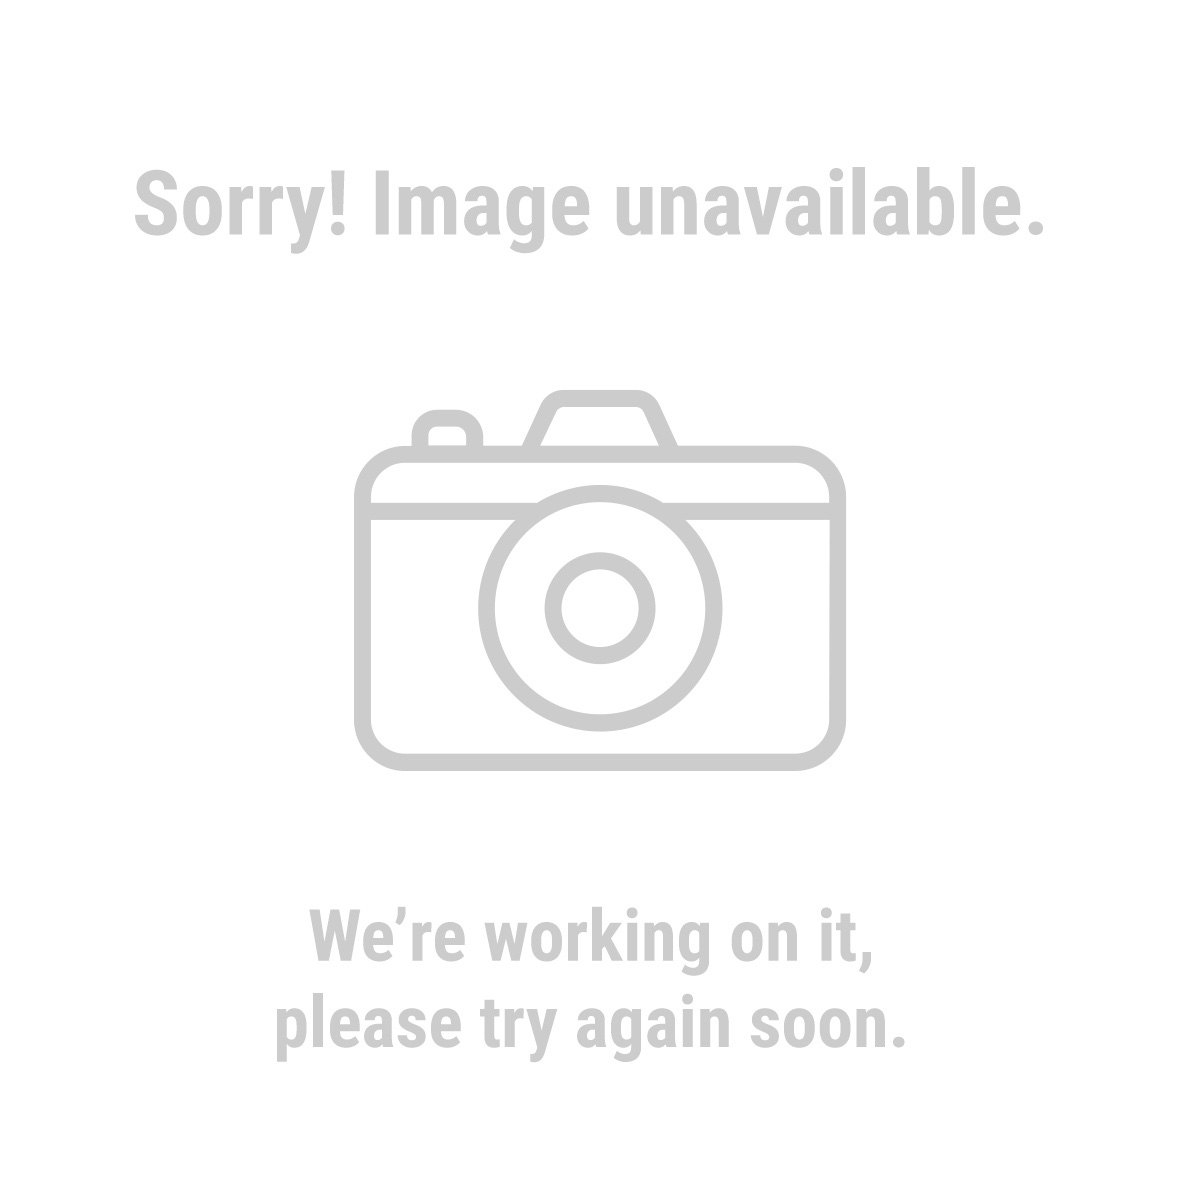 "98727 100 Piece 8"" Fluorescent Cable Tie Assortment"